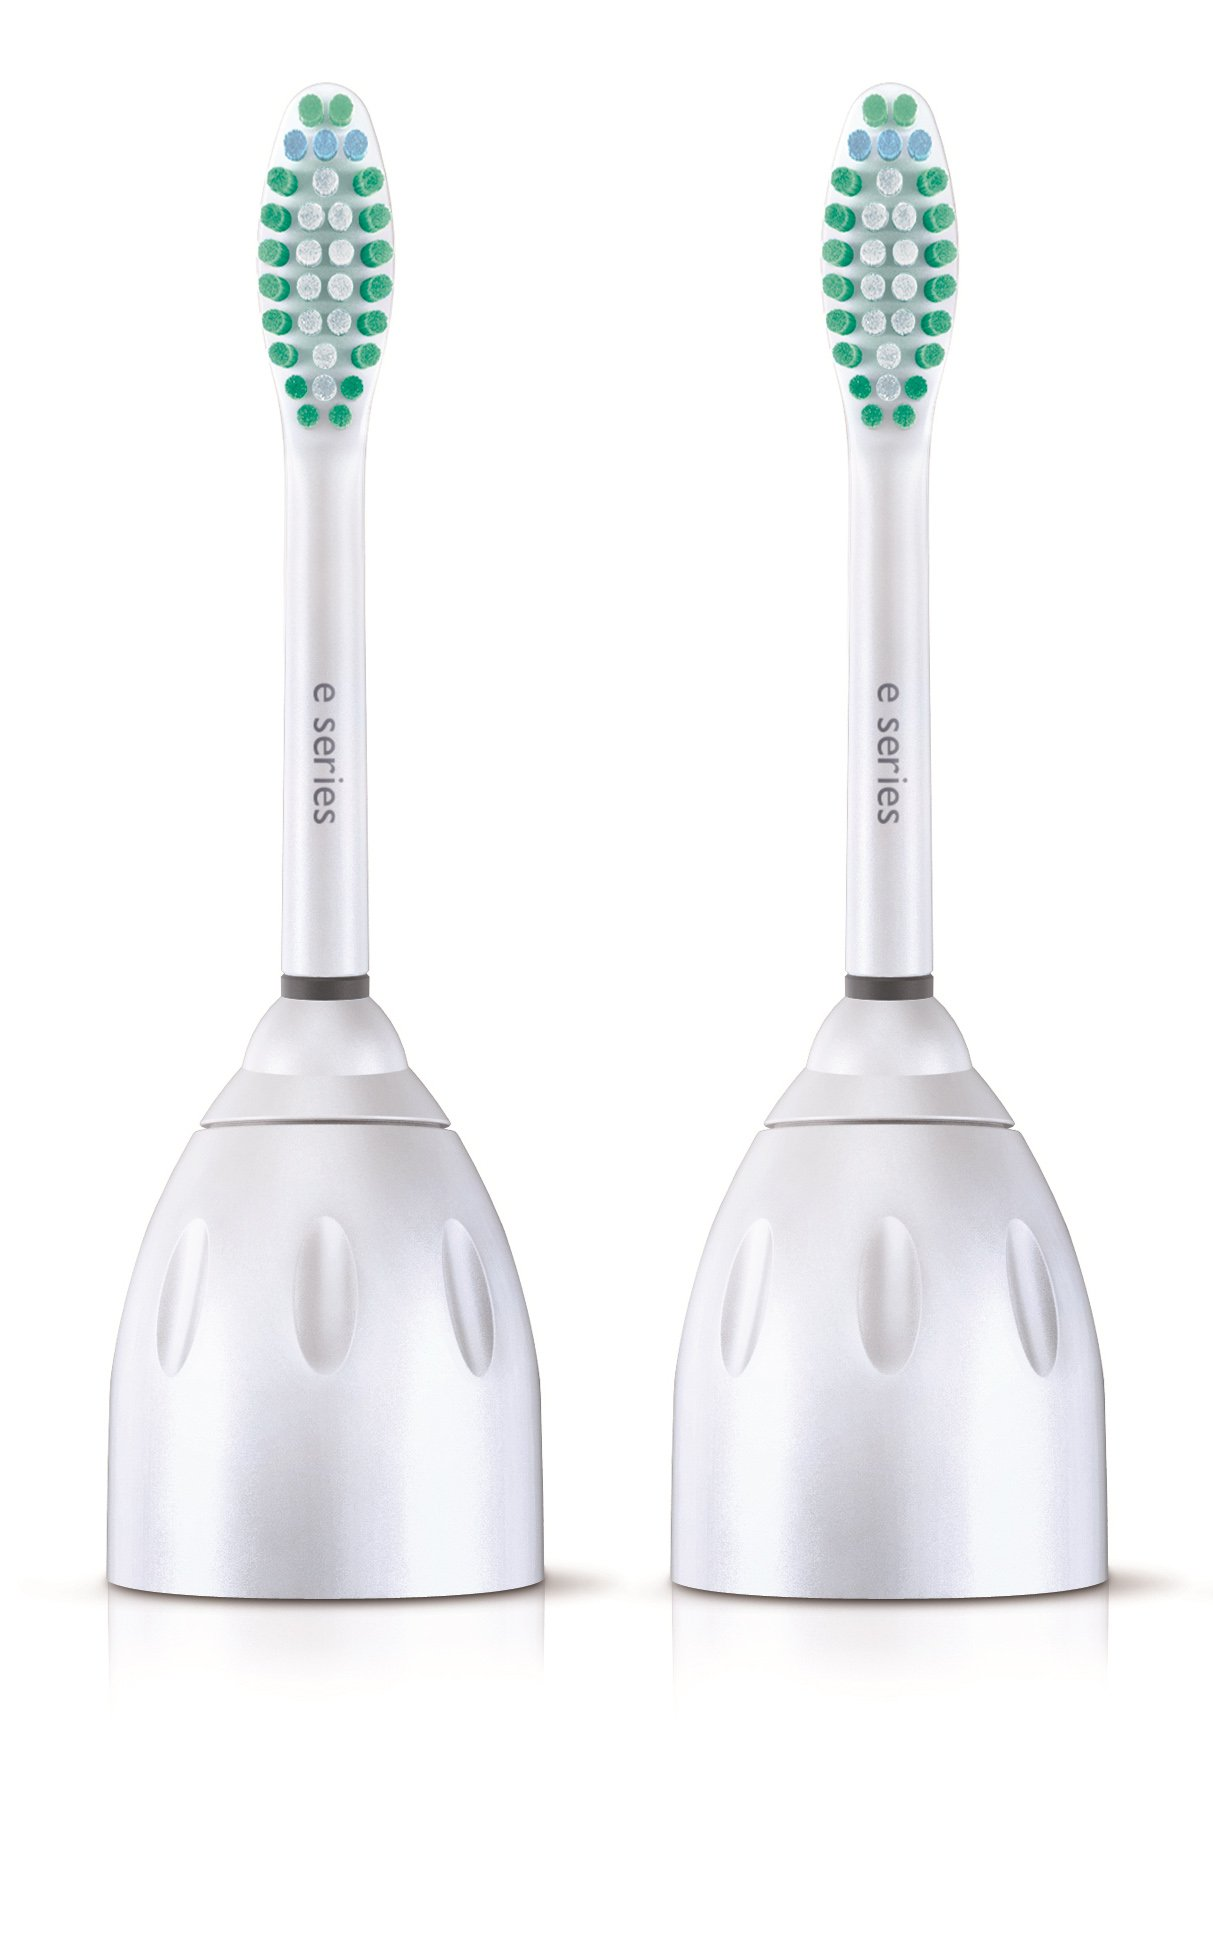 Genuine Philips Sonicare E-Series replacement toothbrush head, Pack of 2, Frustration Free Packaging, (HX7022/30, 2) by Philips Sonicare